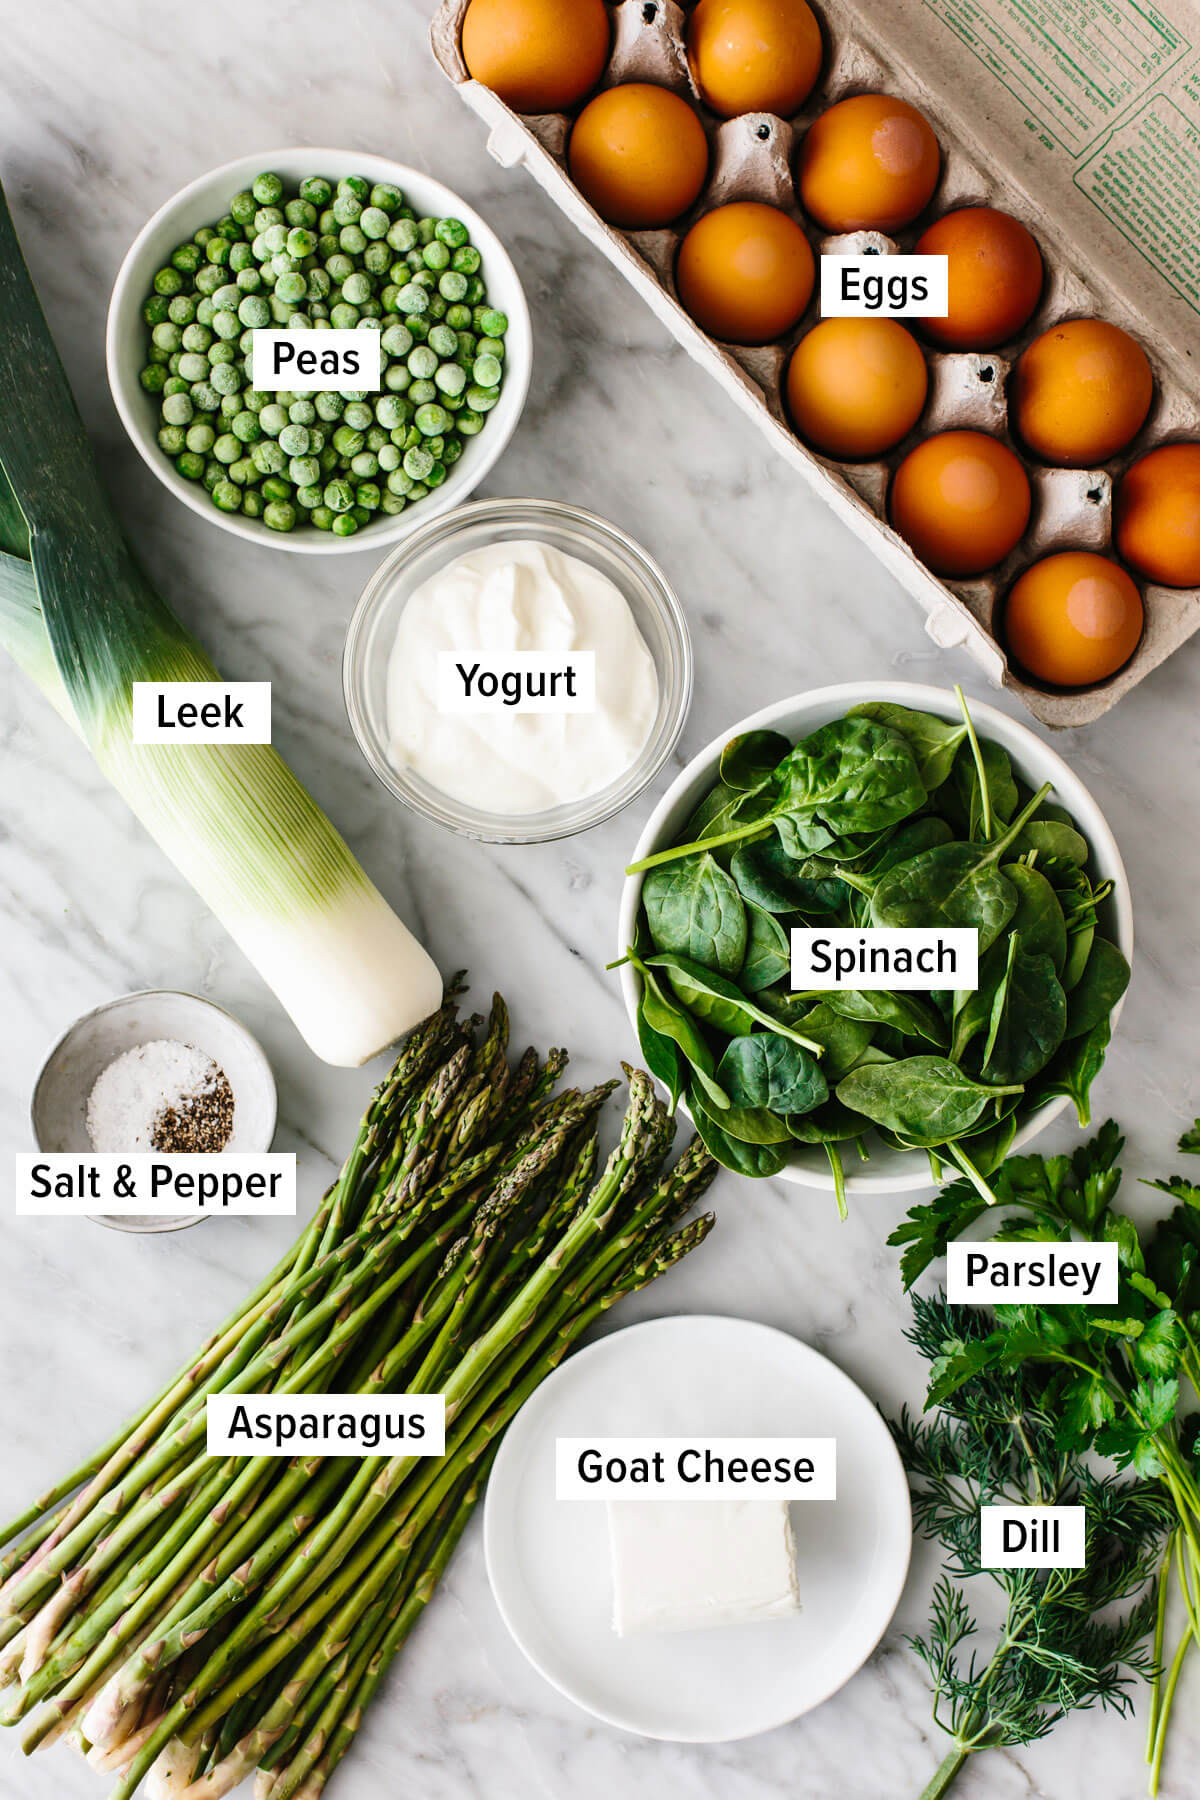 Ingredients for a spring vegetable frittata on a table.